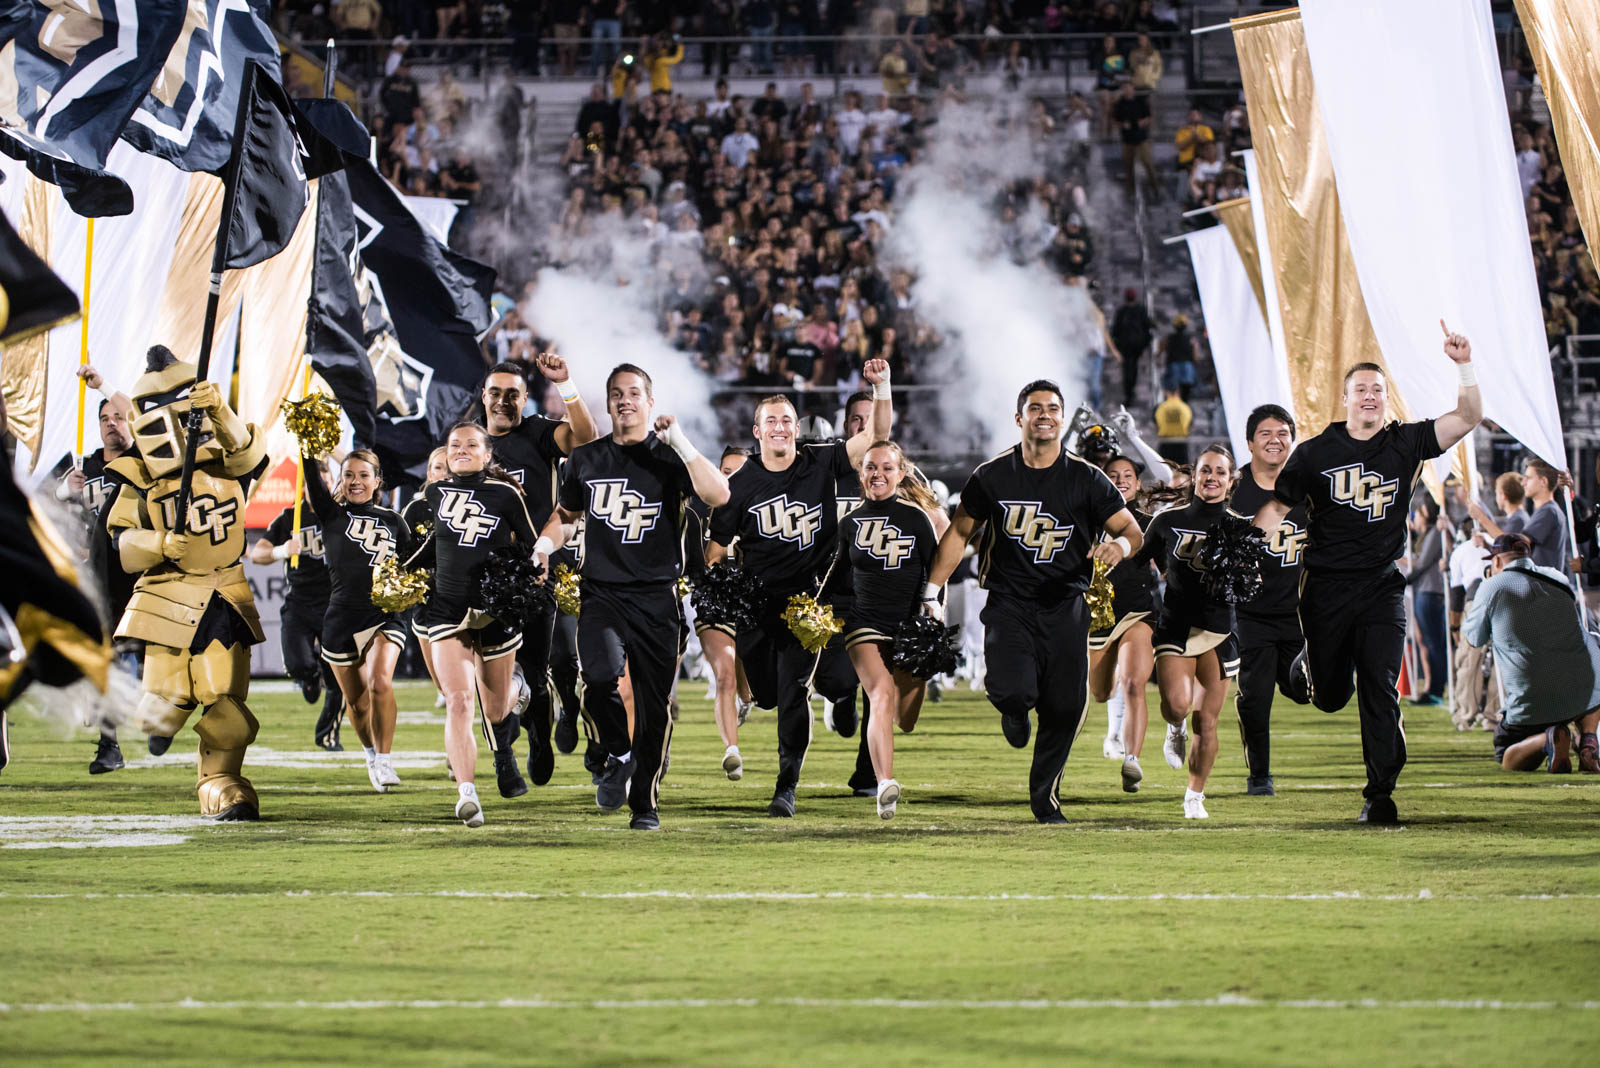 ucf-best-of-photos-cheerleaders-charge-the-field